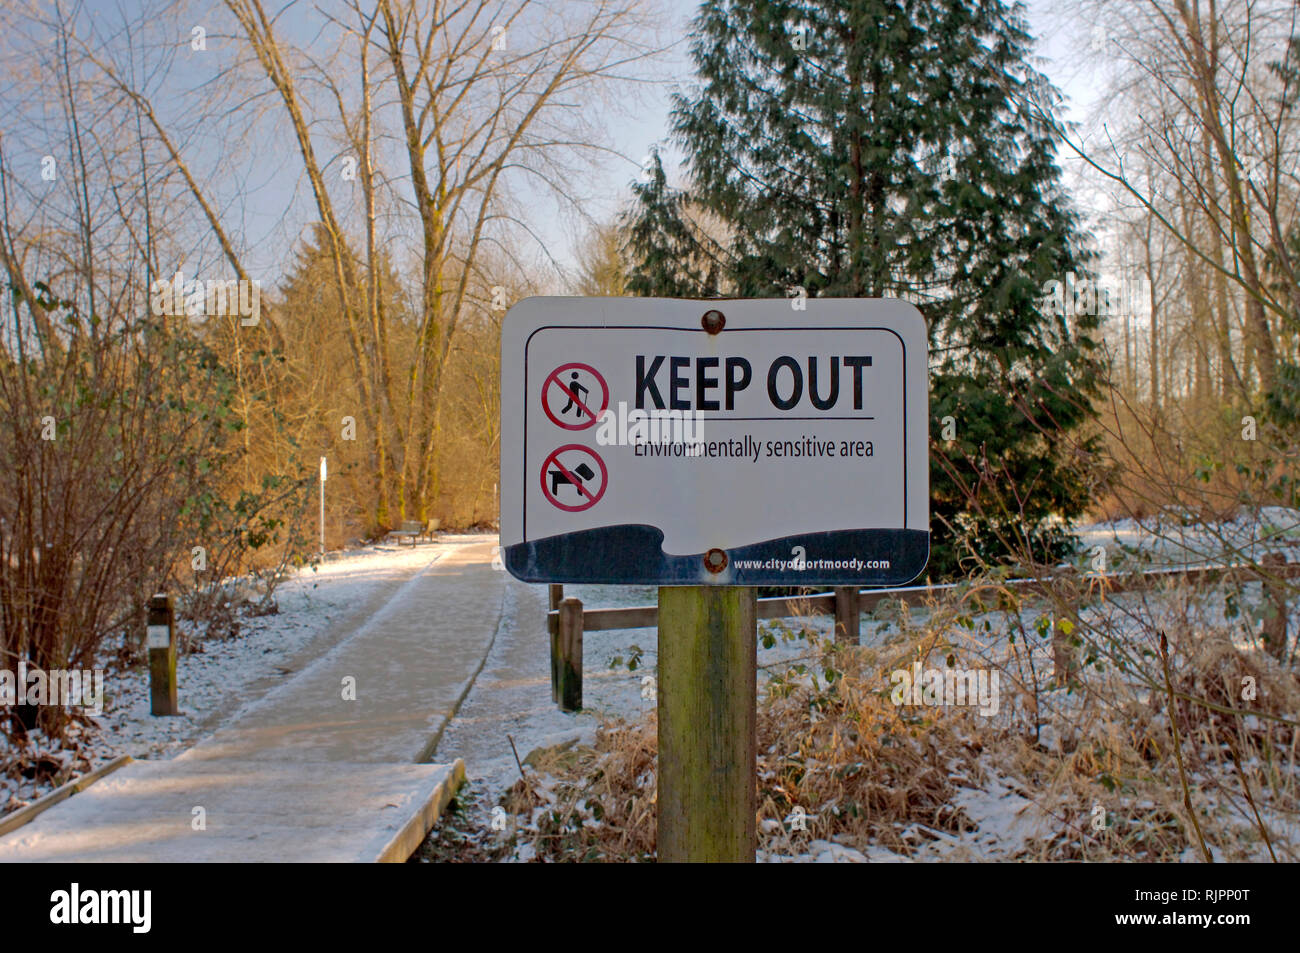 A keep out sign warning of an environmentally sensitive area in Shoreline Park, Rocky Point, Port Moody, British Columbia, Canada. - Stock Image